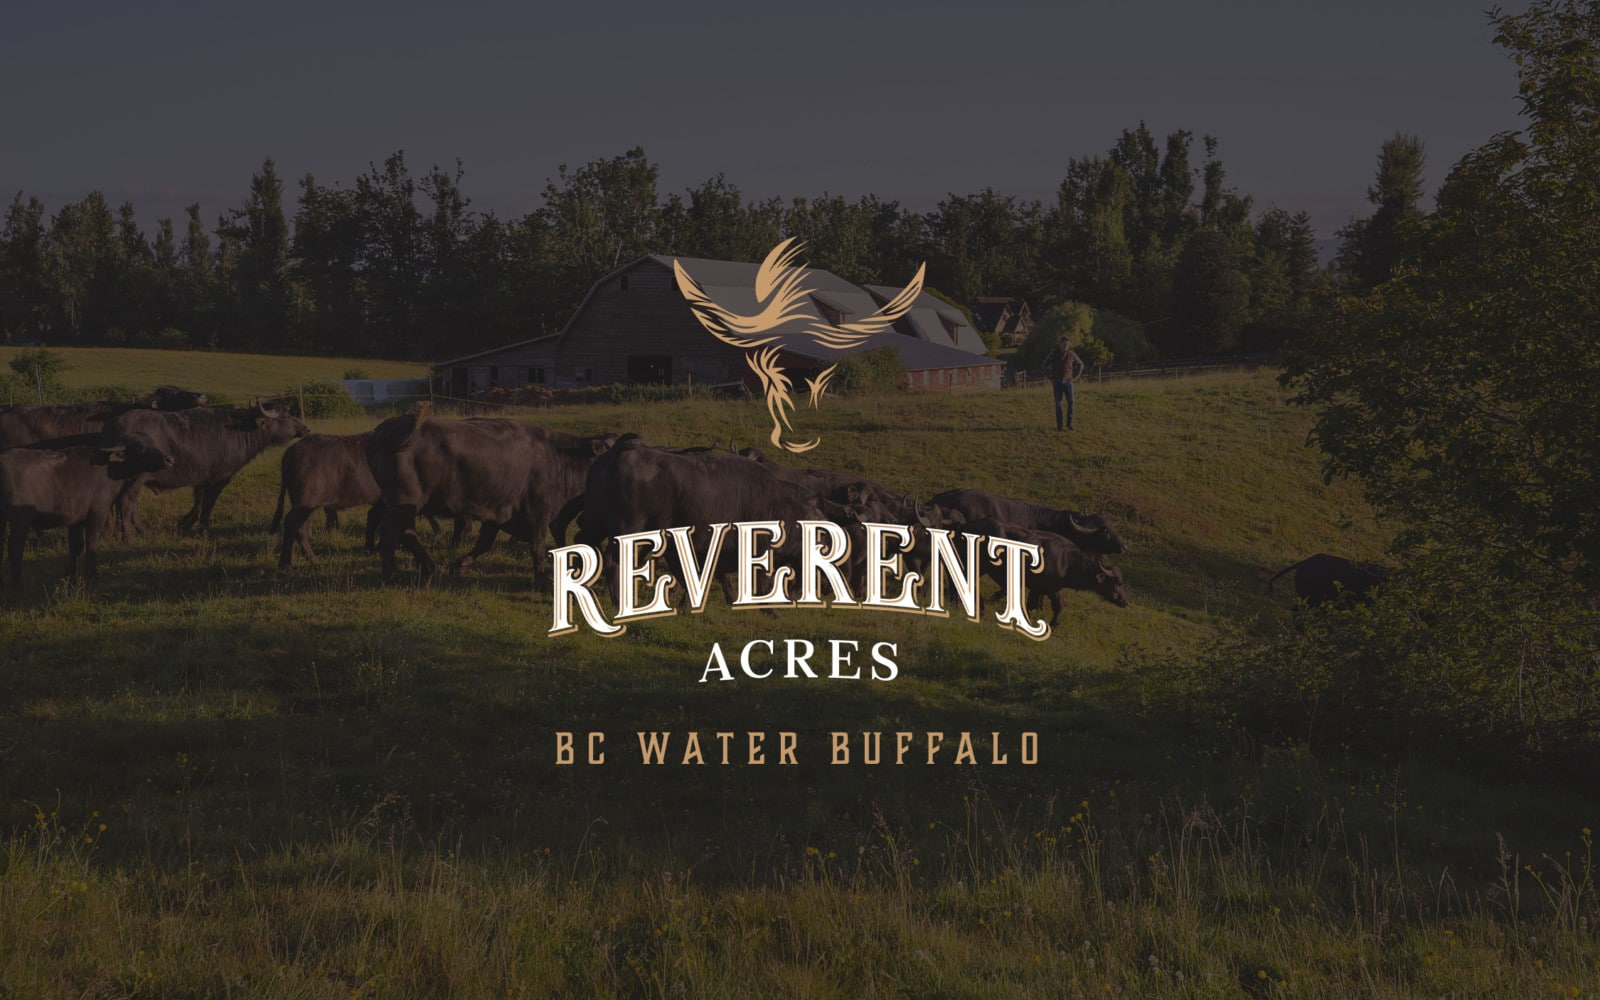 Reverent Acres logo and farm image